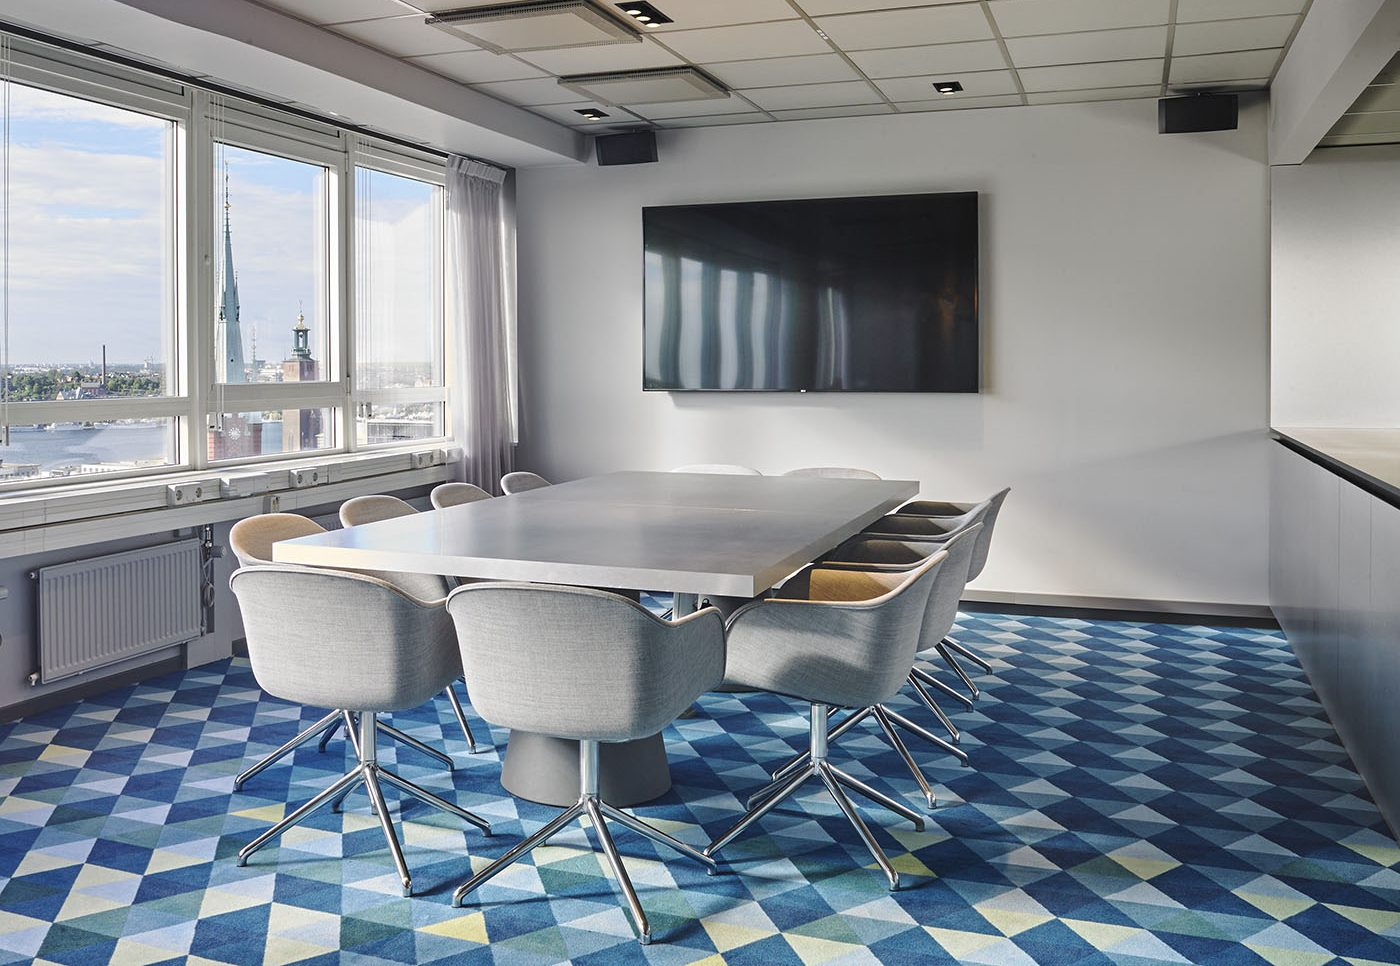 Penthouse environment, conference room- Stockholm